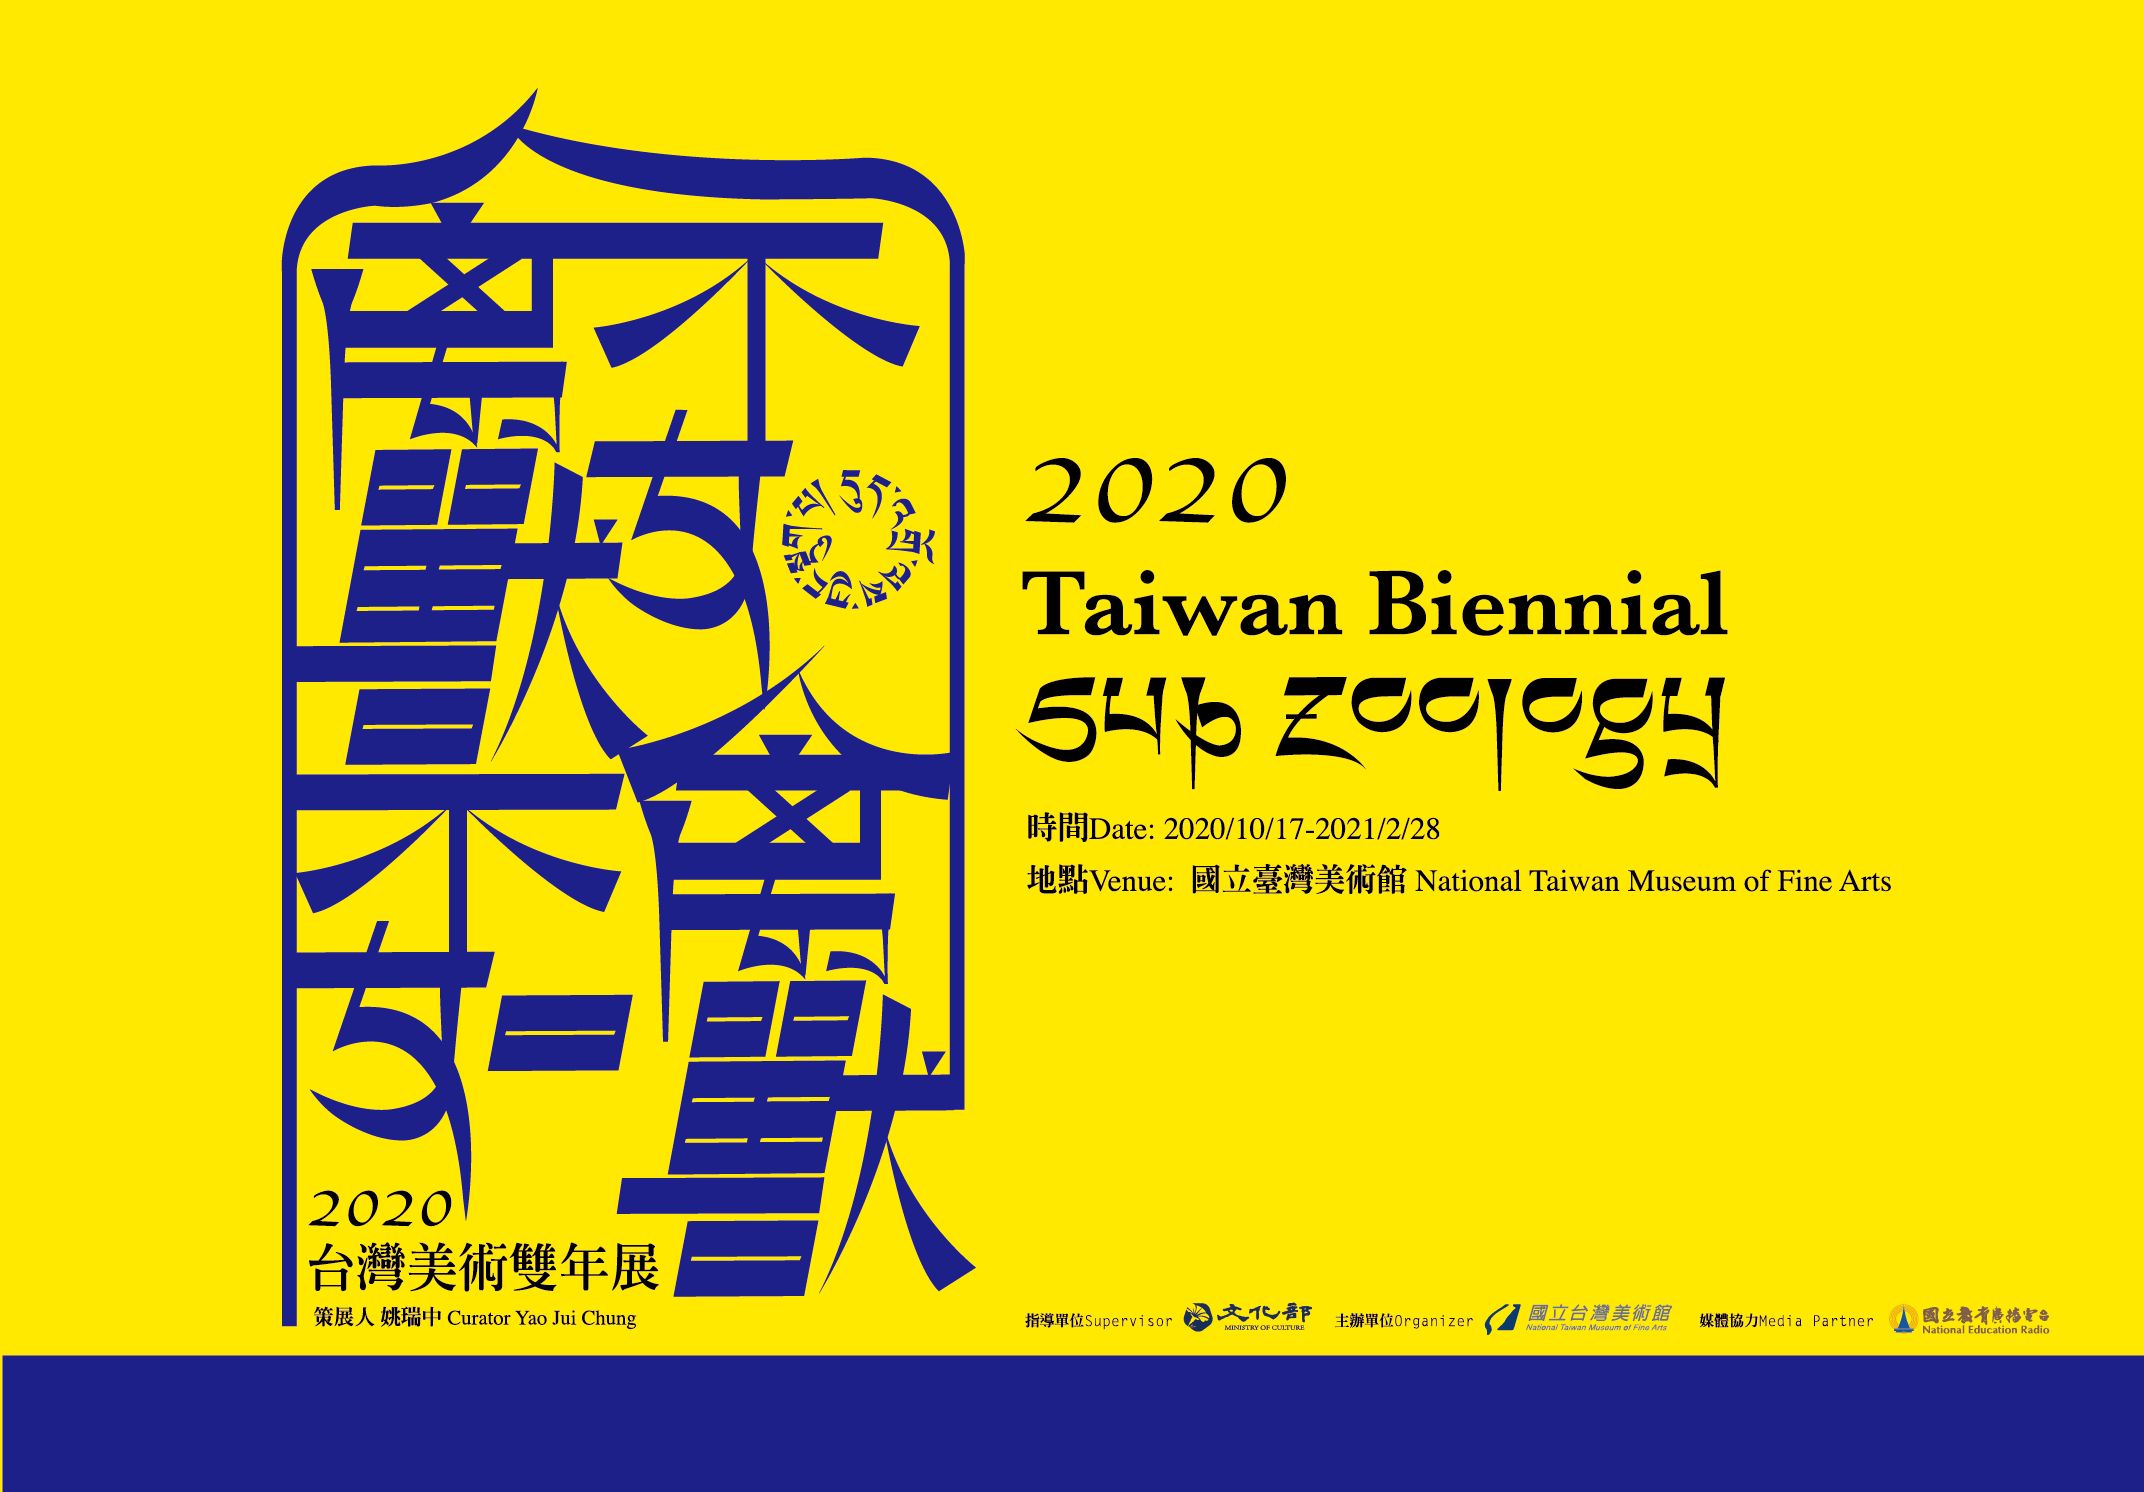 2020 Taiwan Biennial 'Subzoology' adopts human-animal relationship as main themeopennewwindow